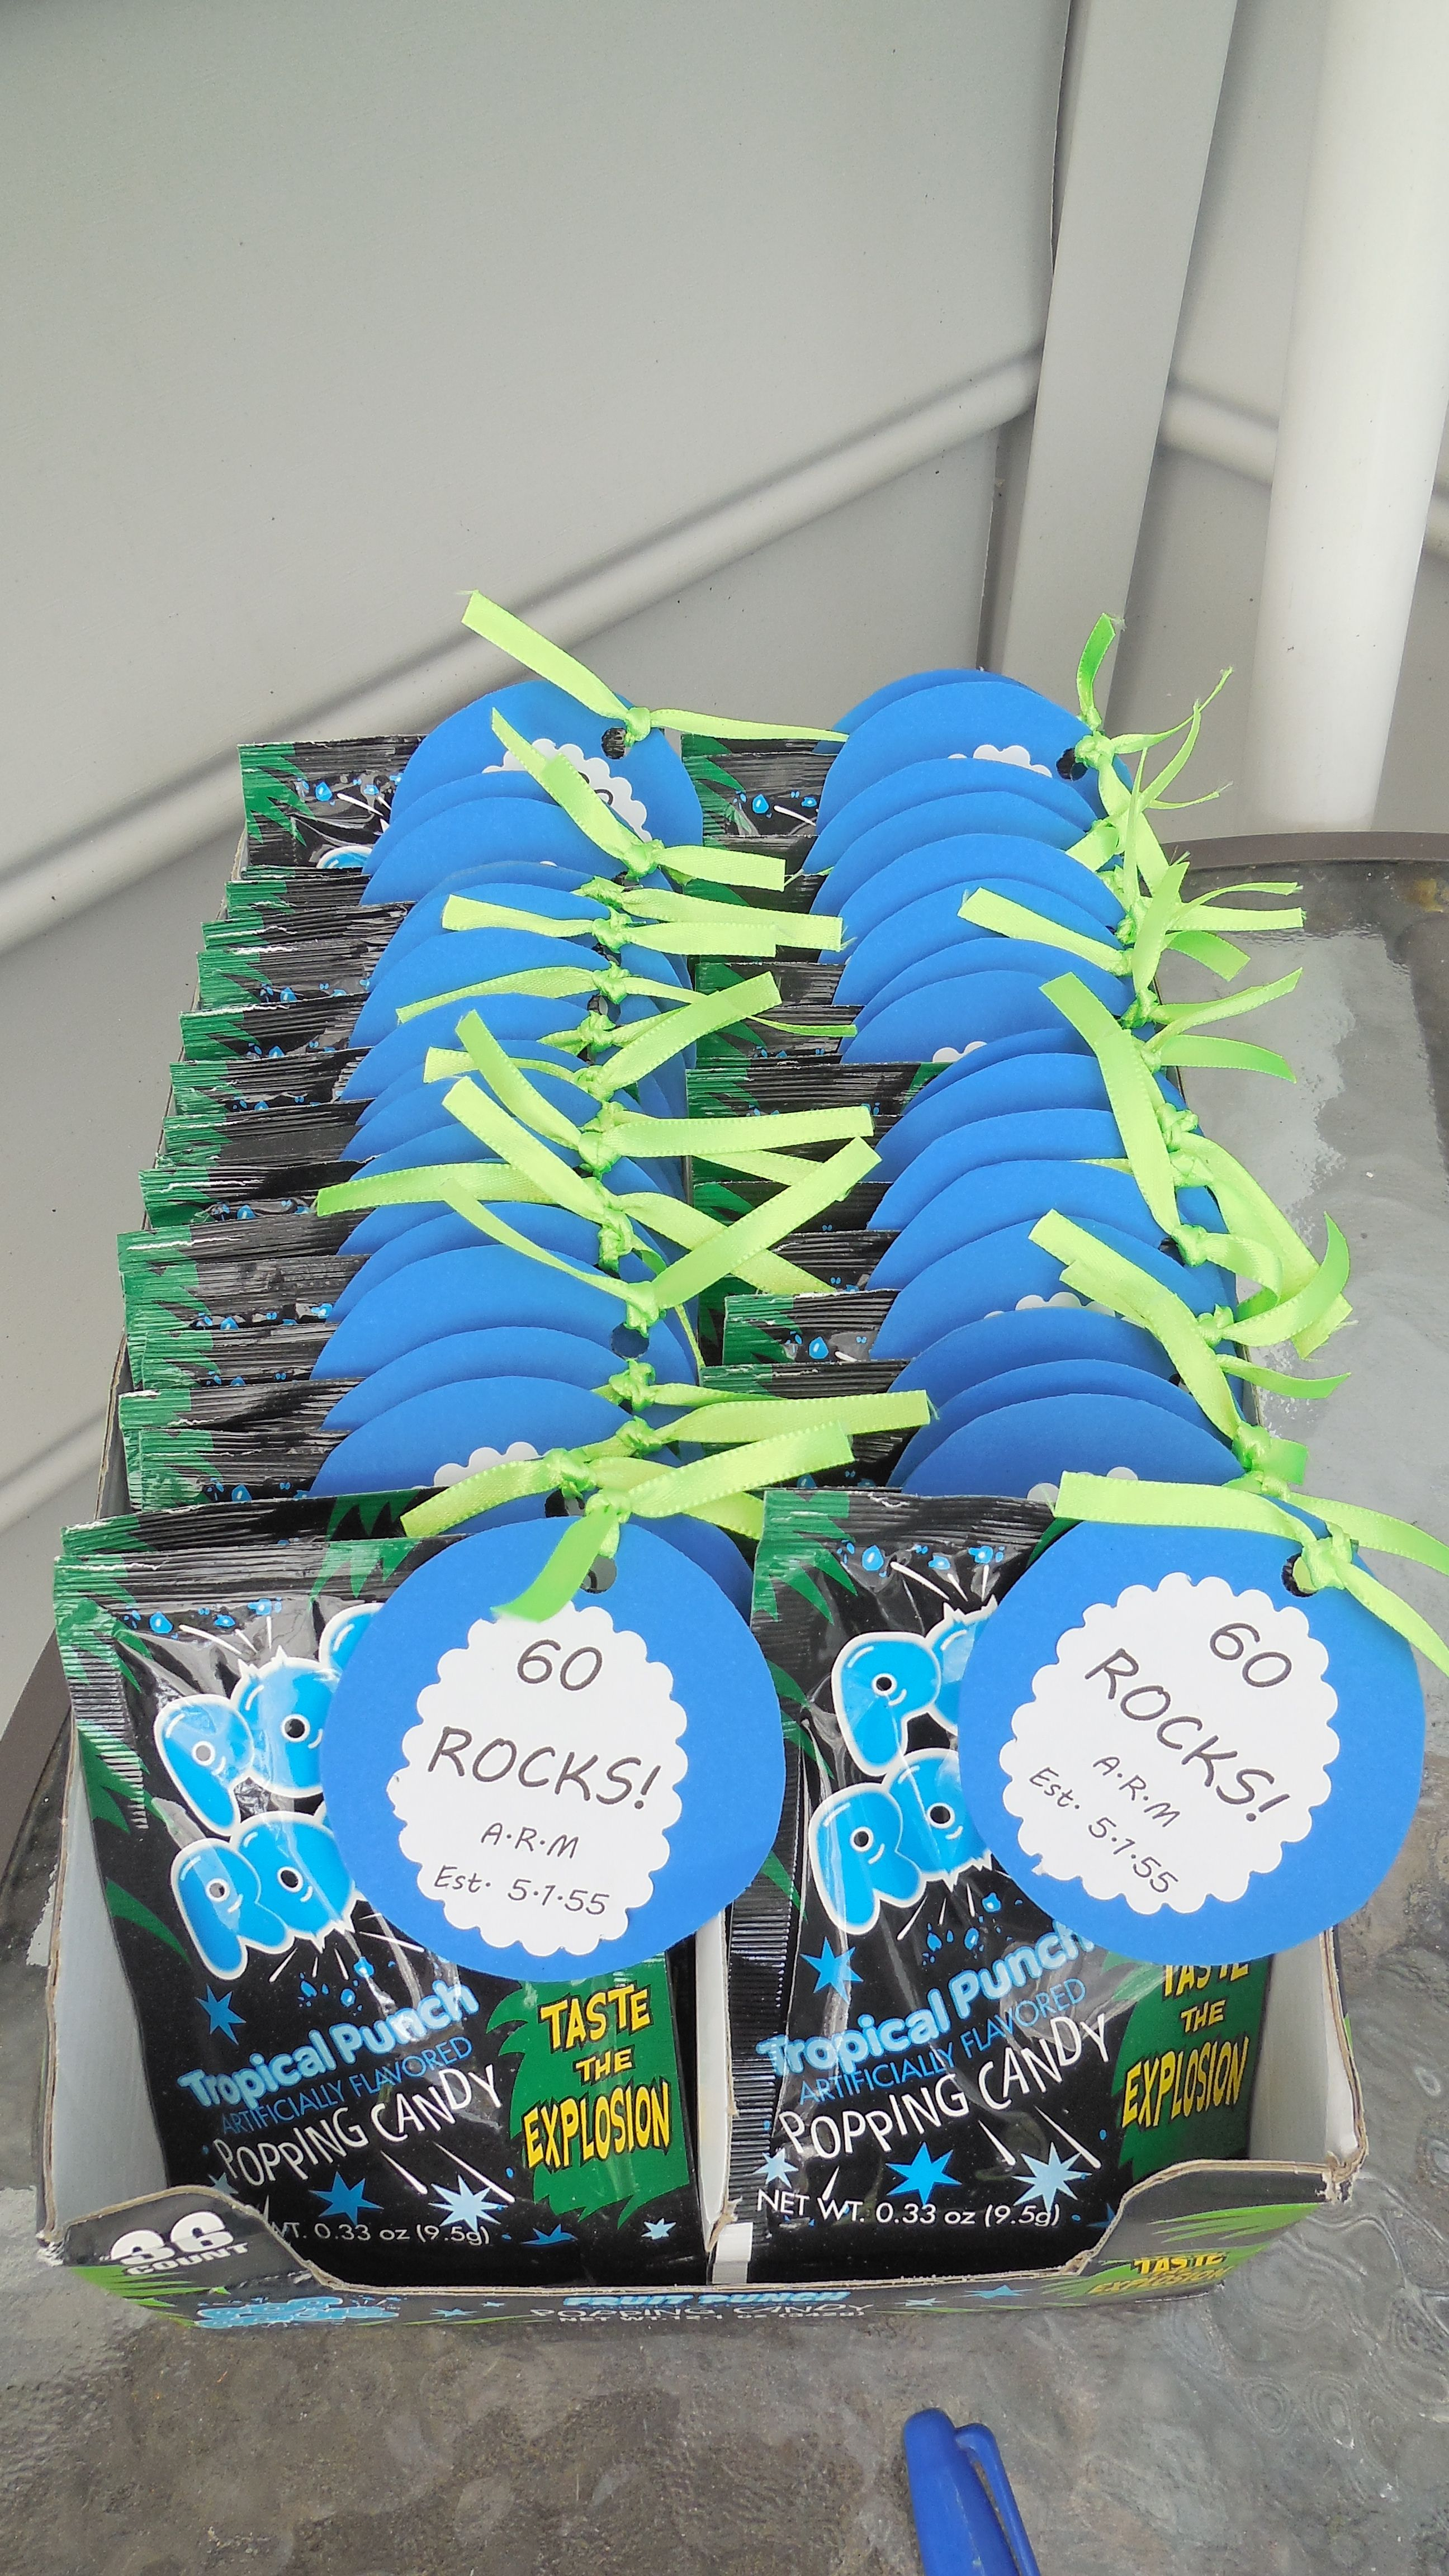 60th birthday party favors bean buddy invites party for 60th anniversary party decoration ideas